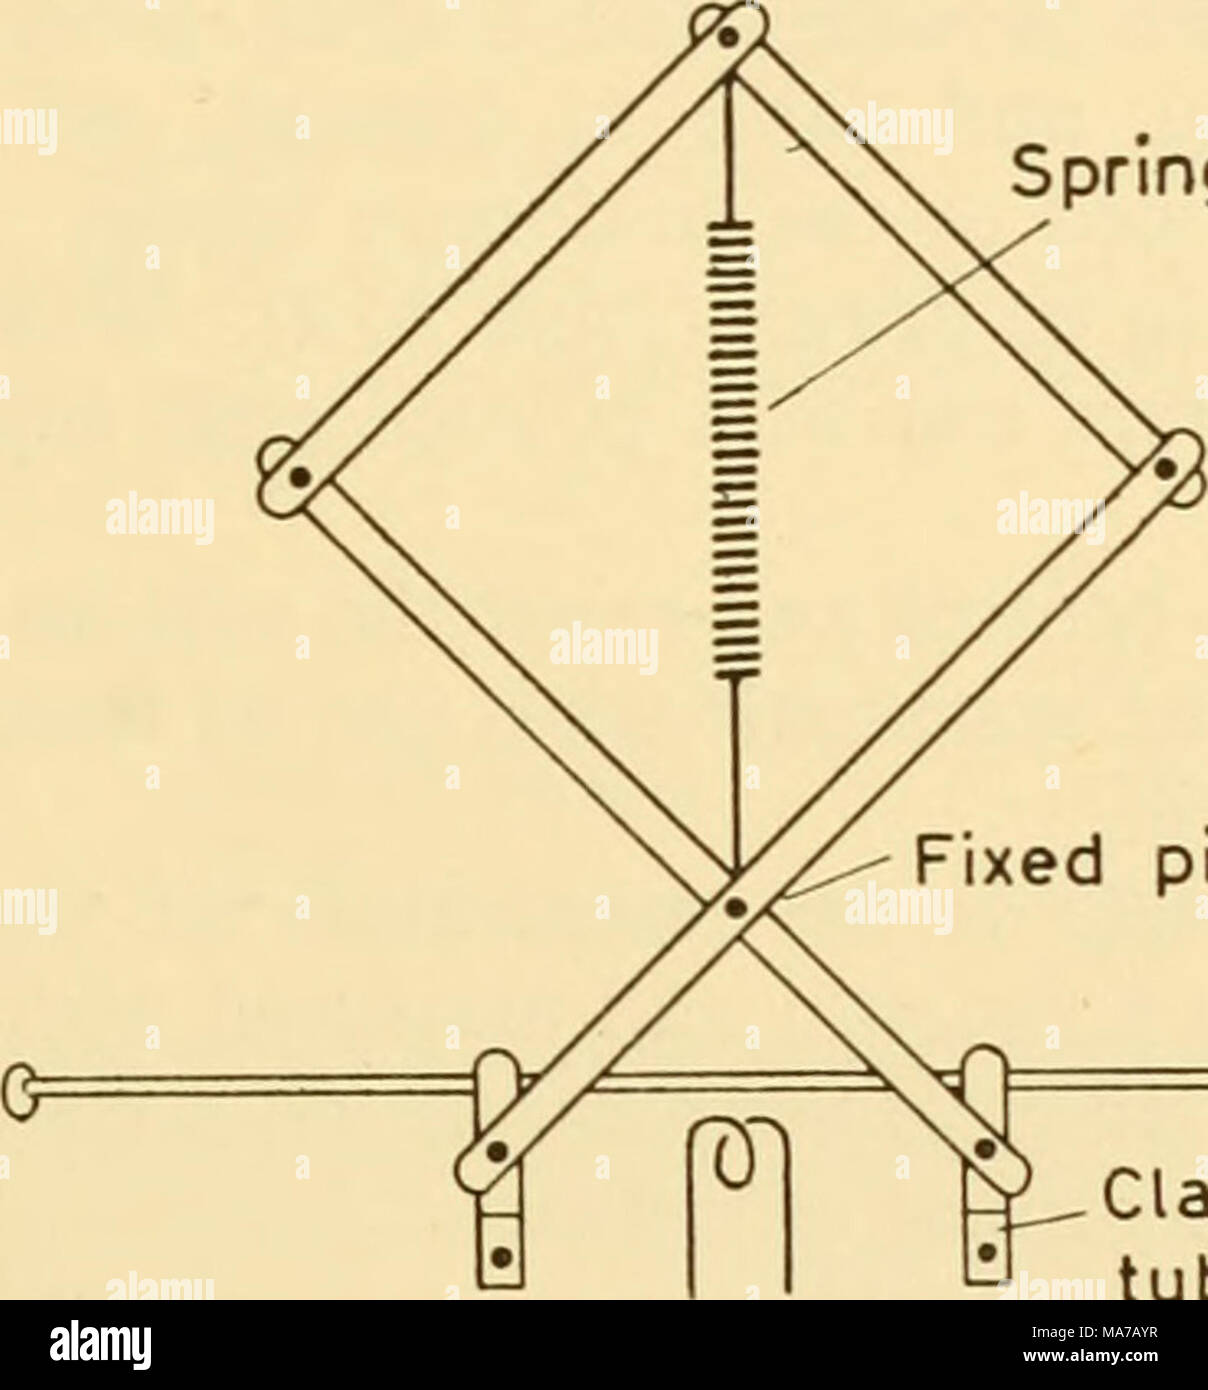 Simple Machines Stock Photos Images Alamy Parts Heating Element As Well Singer Sewing Machine Diagram Electronic Apparatus For Biological Research Fixed Pivot Clamp Tubing Sliding Bar